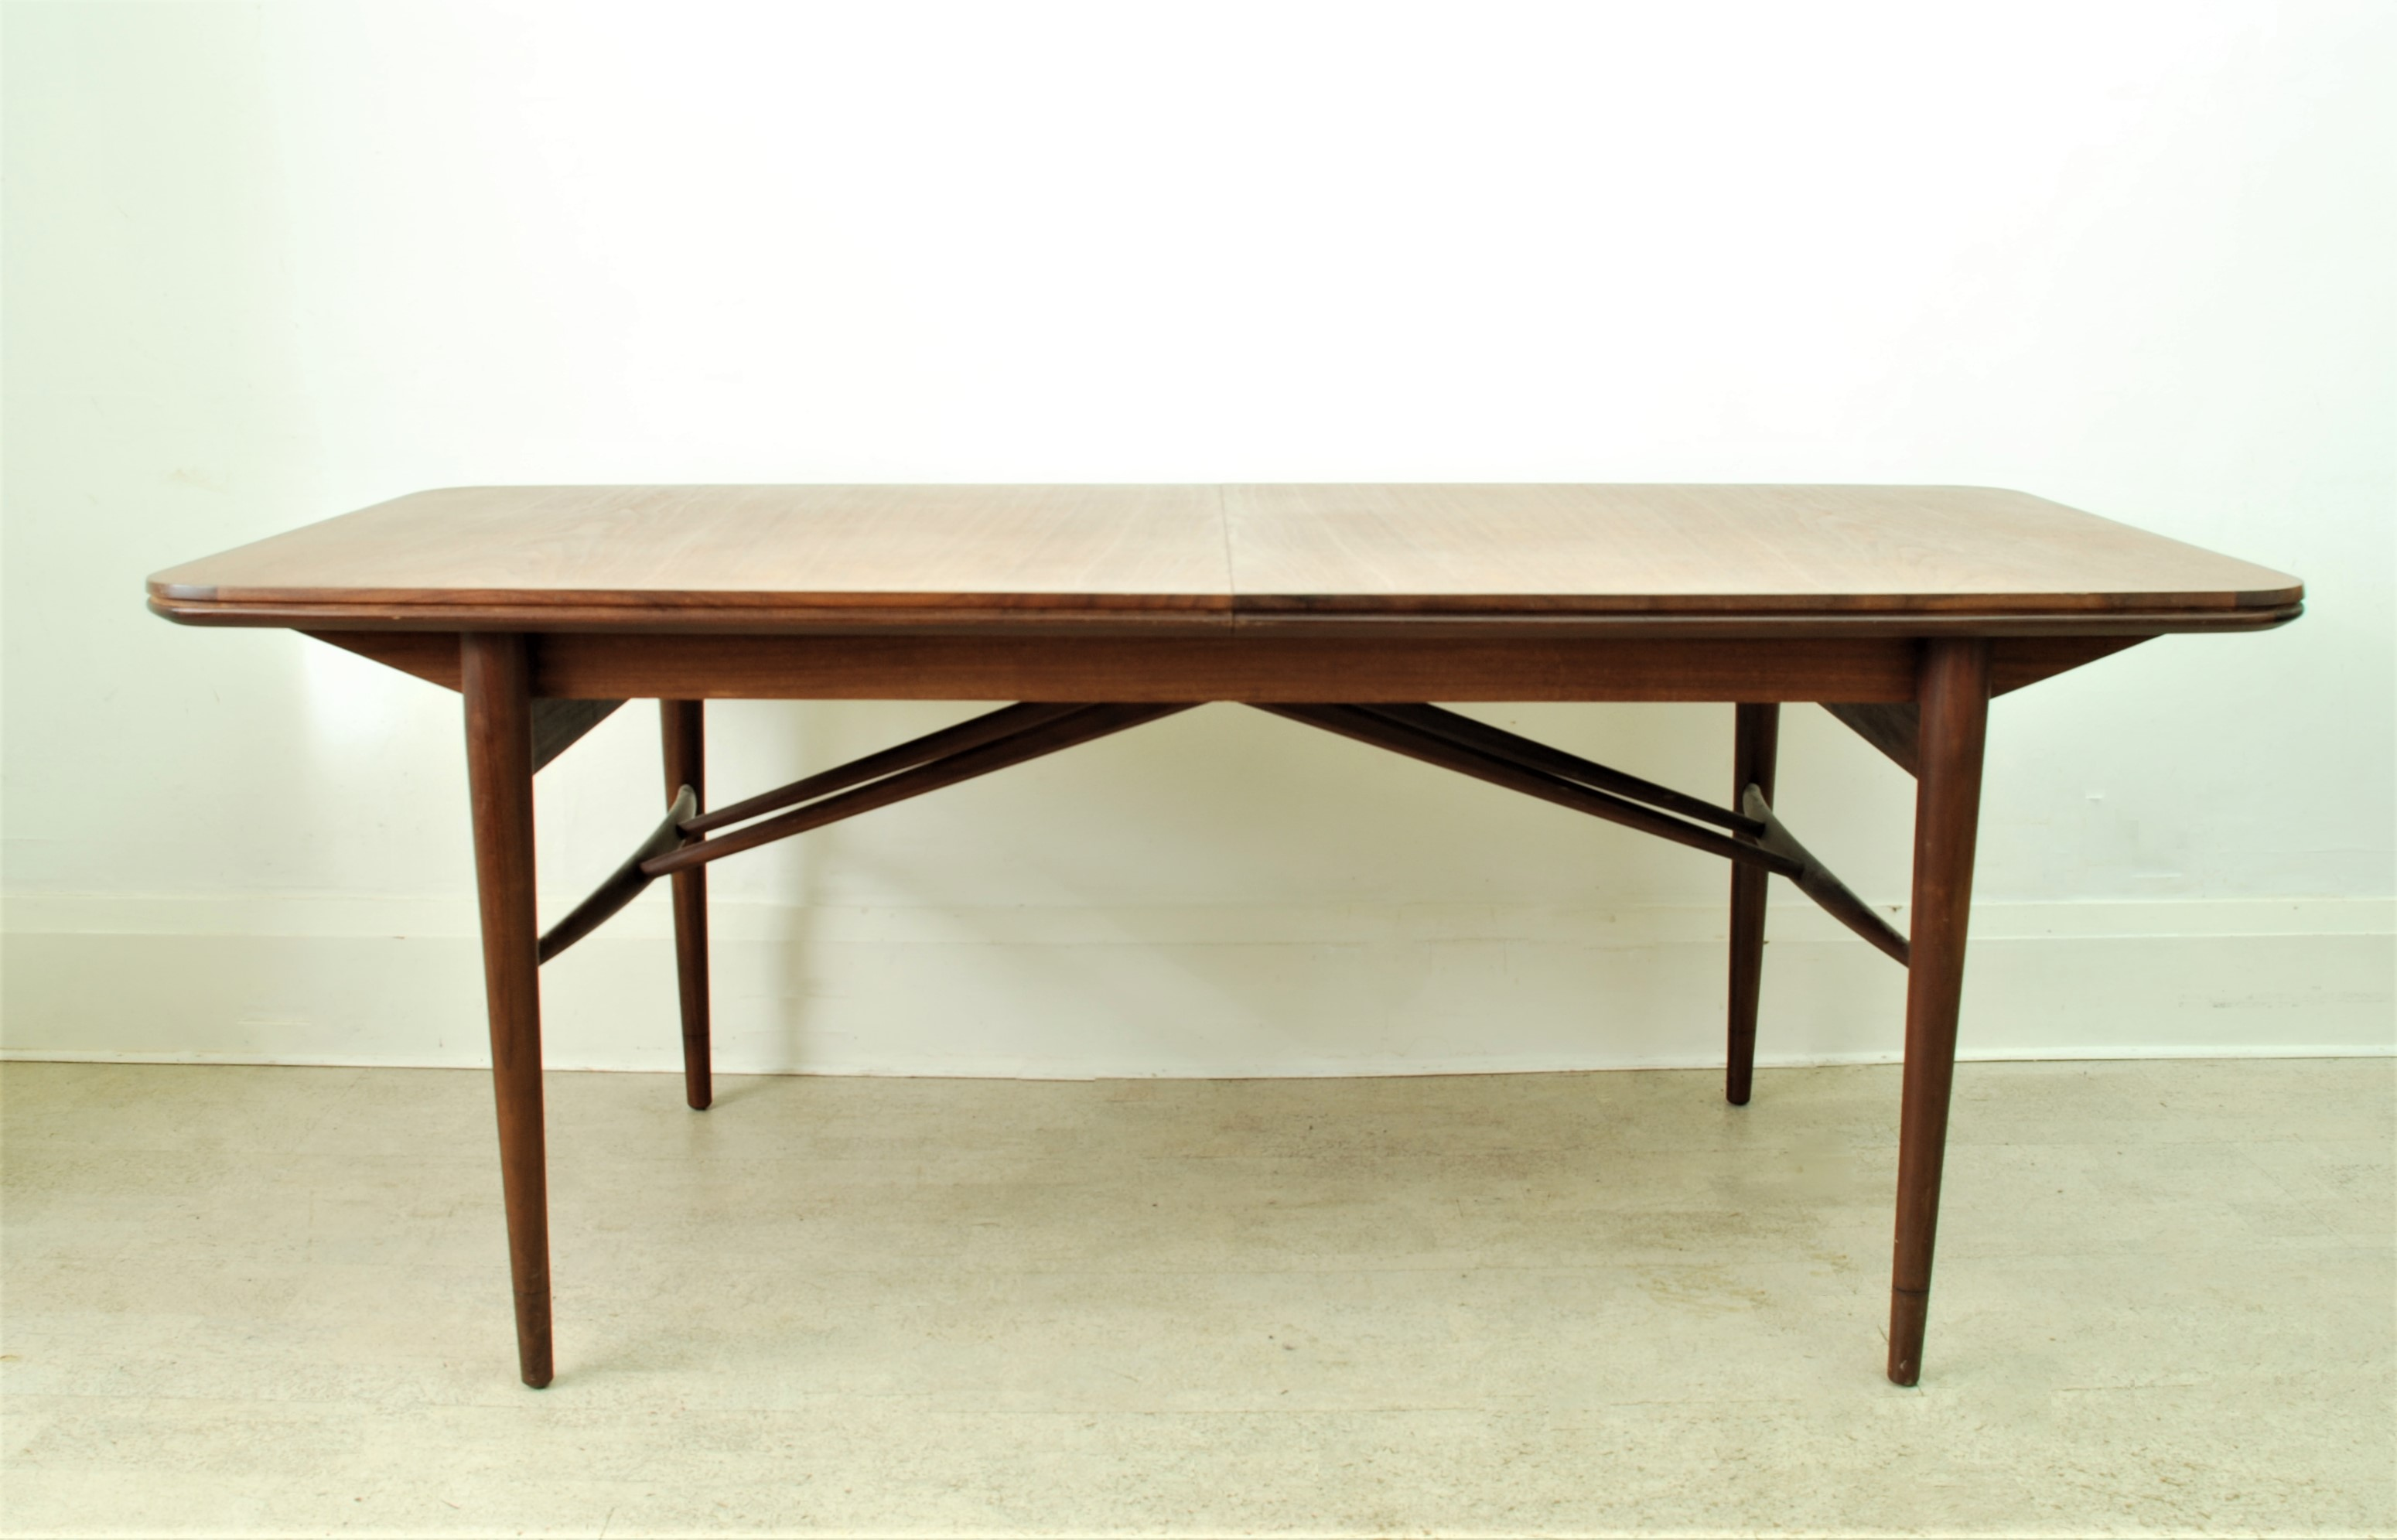 Robert Heritage Archie Shine Table